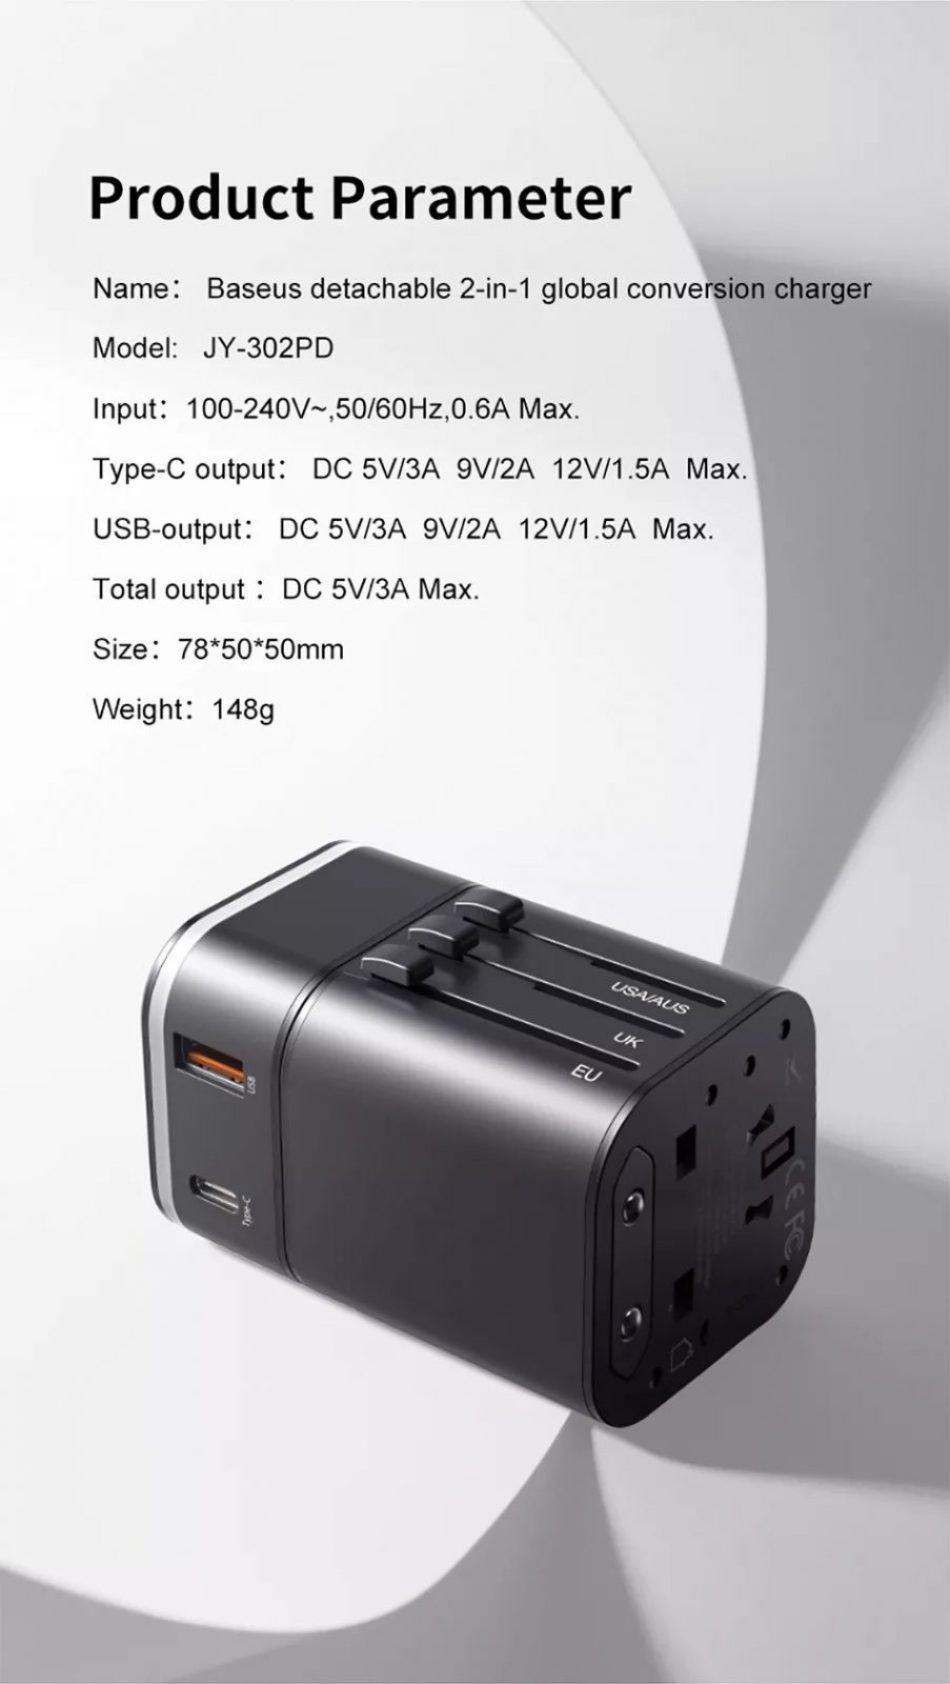 Baseus 2 In 1 Global Conversion Charger 18w (9)